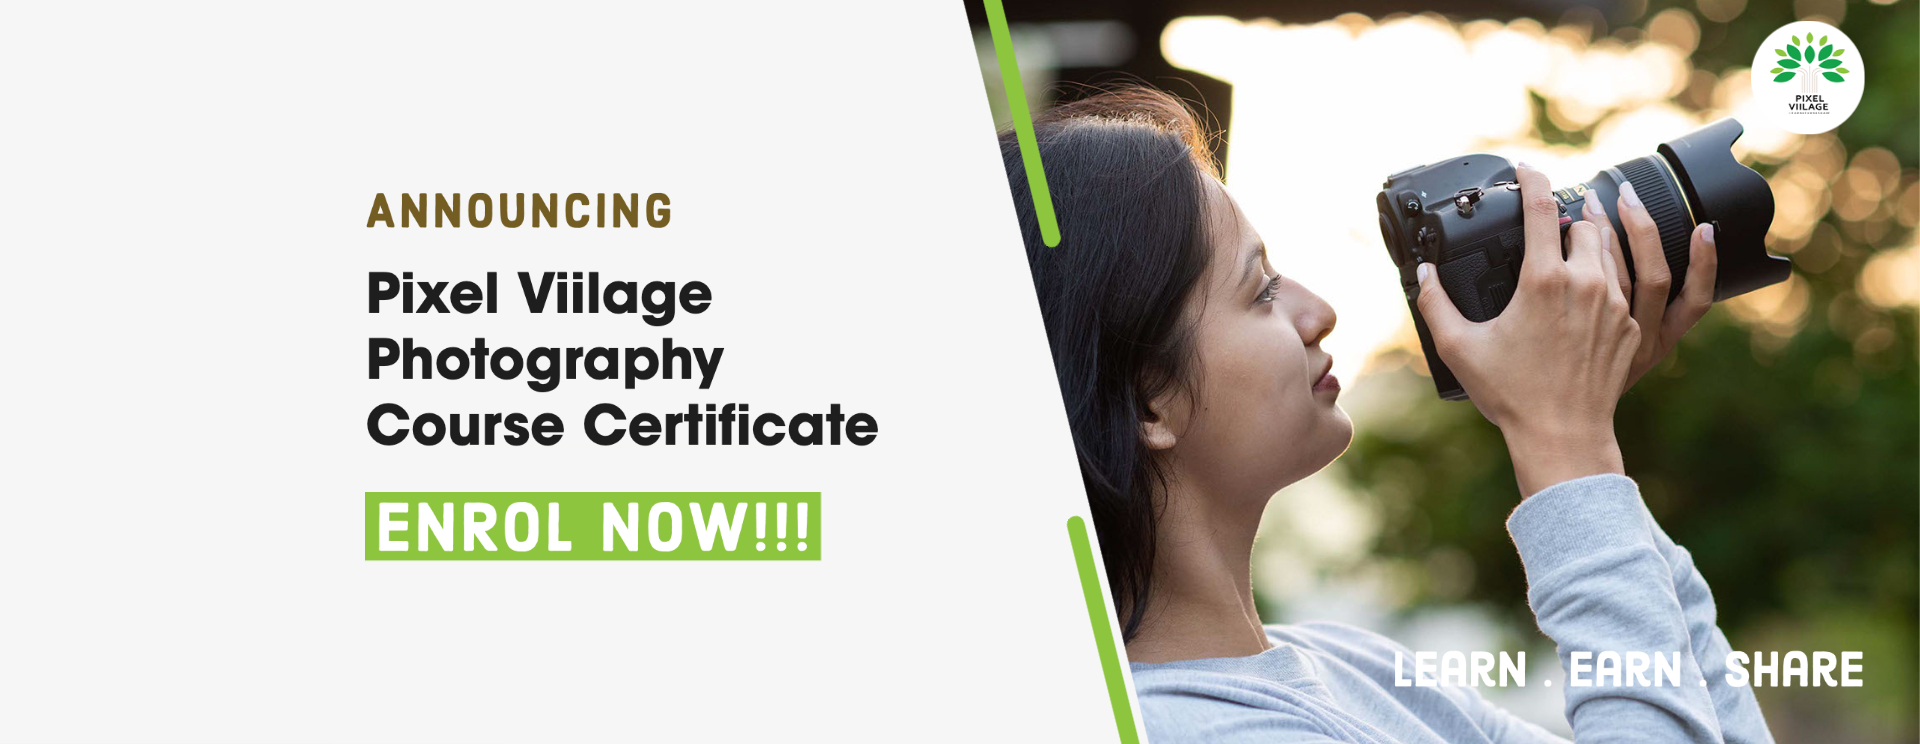 Pixel Viilage Online Photography Course Certificate